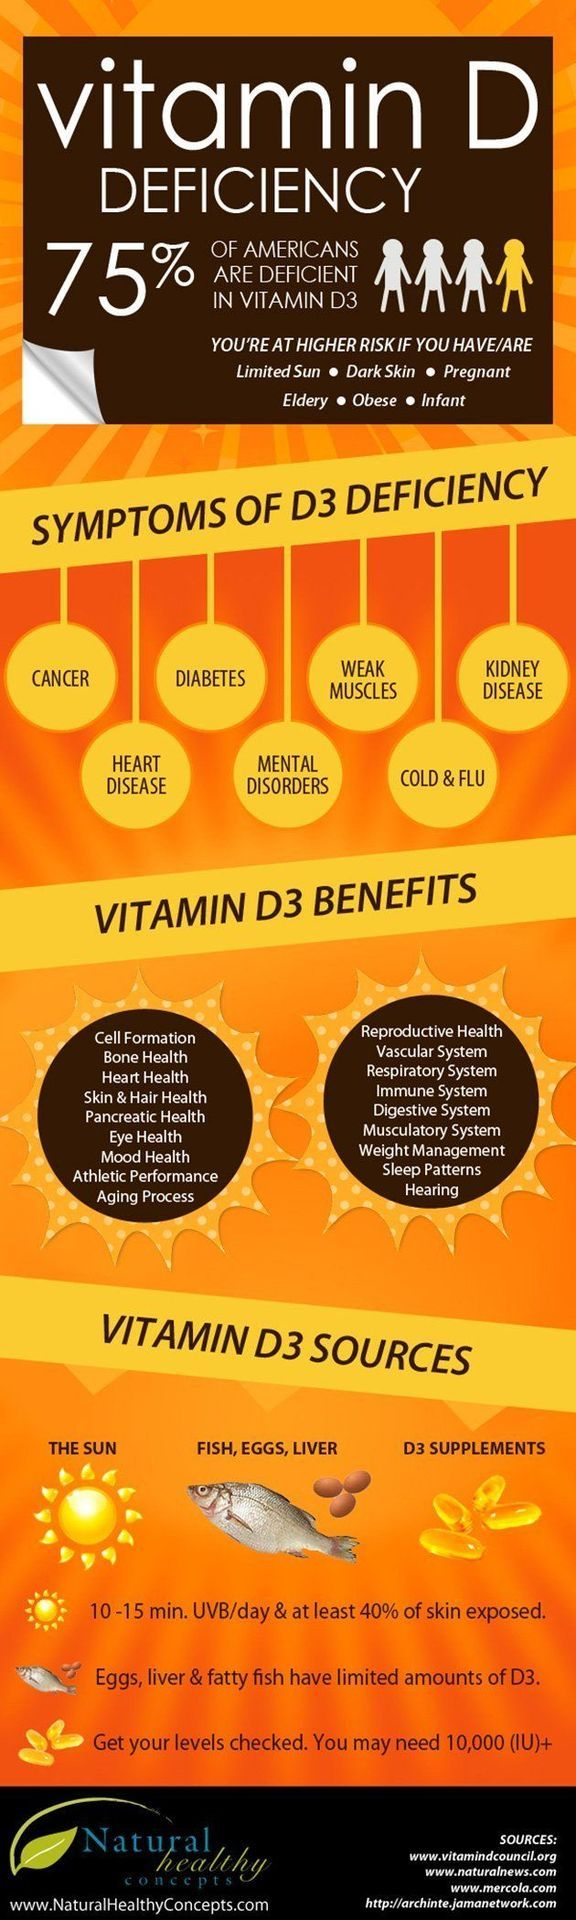 Vitamin D and it's benefits